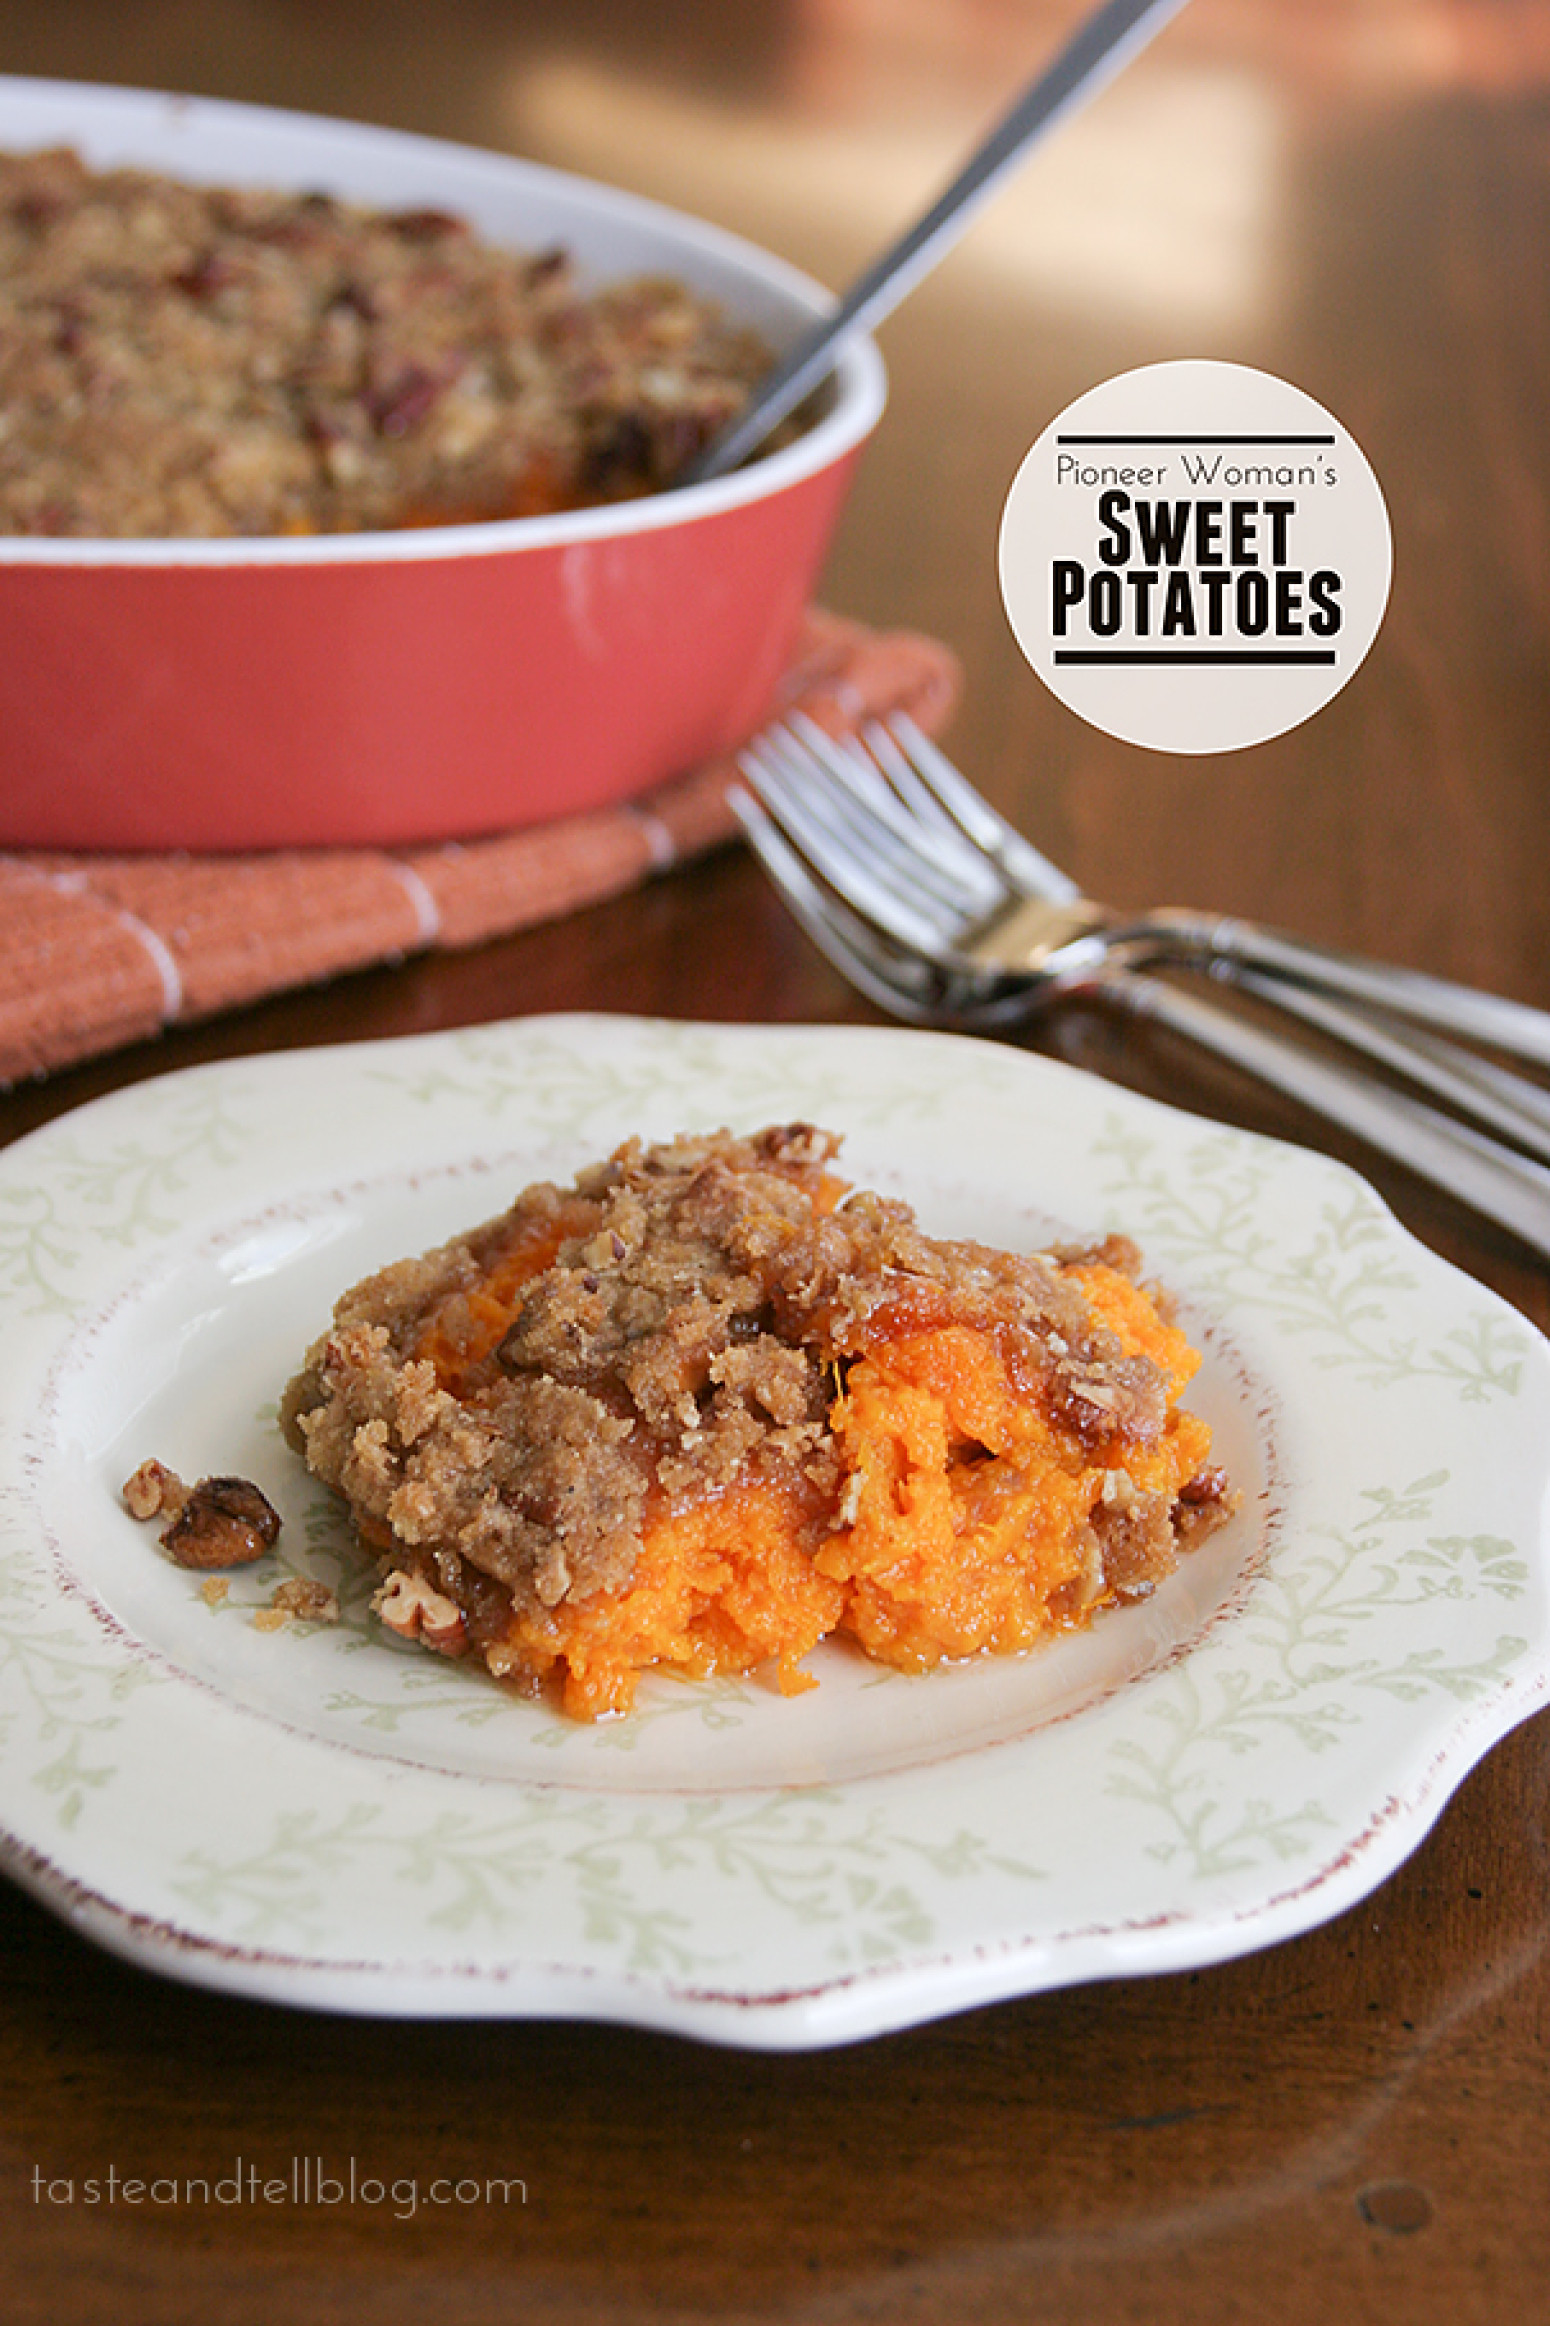 Pioneer Woman Sweet Potato  Pioneer Woman s Sweet Potatoes Recipe